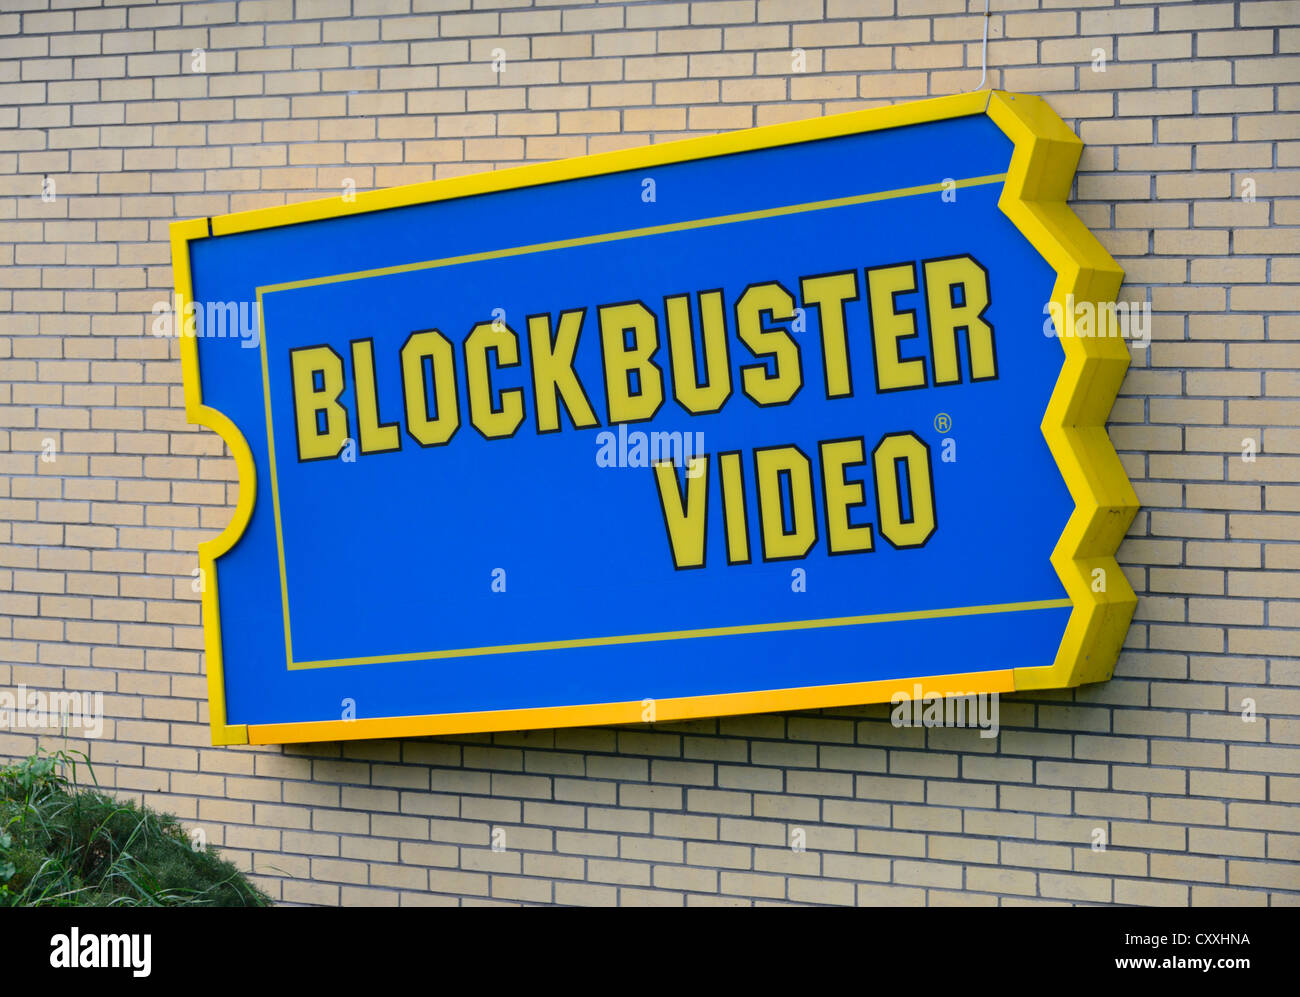 Blockbuster Video sign. Central Drive, Morecambe, Lancashire, England, United Kingdom, Europe. Stock Photo